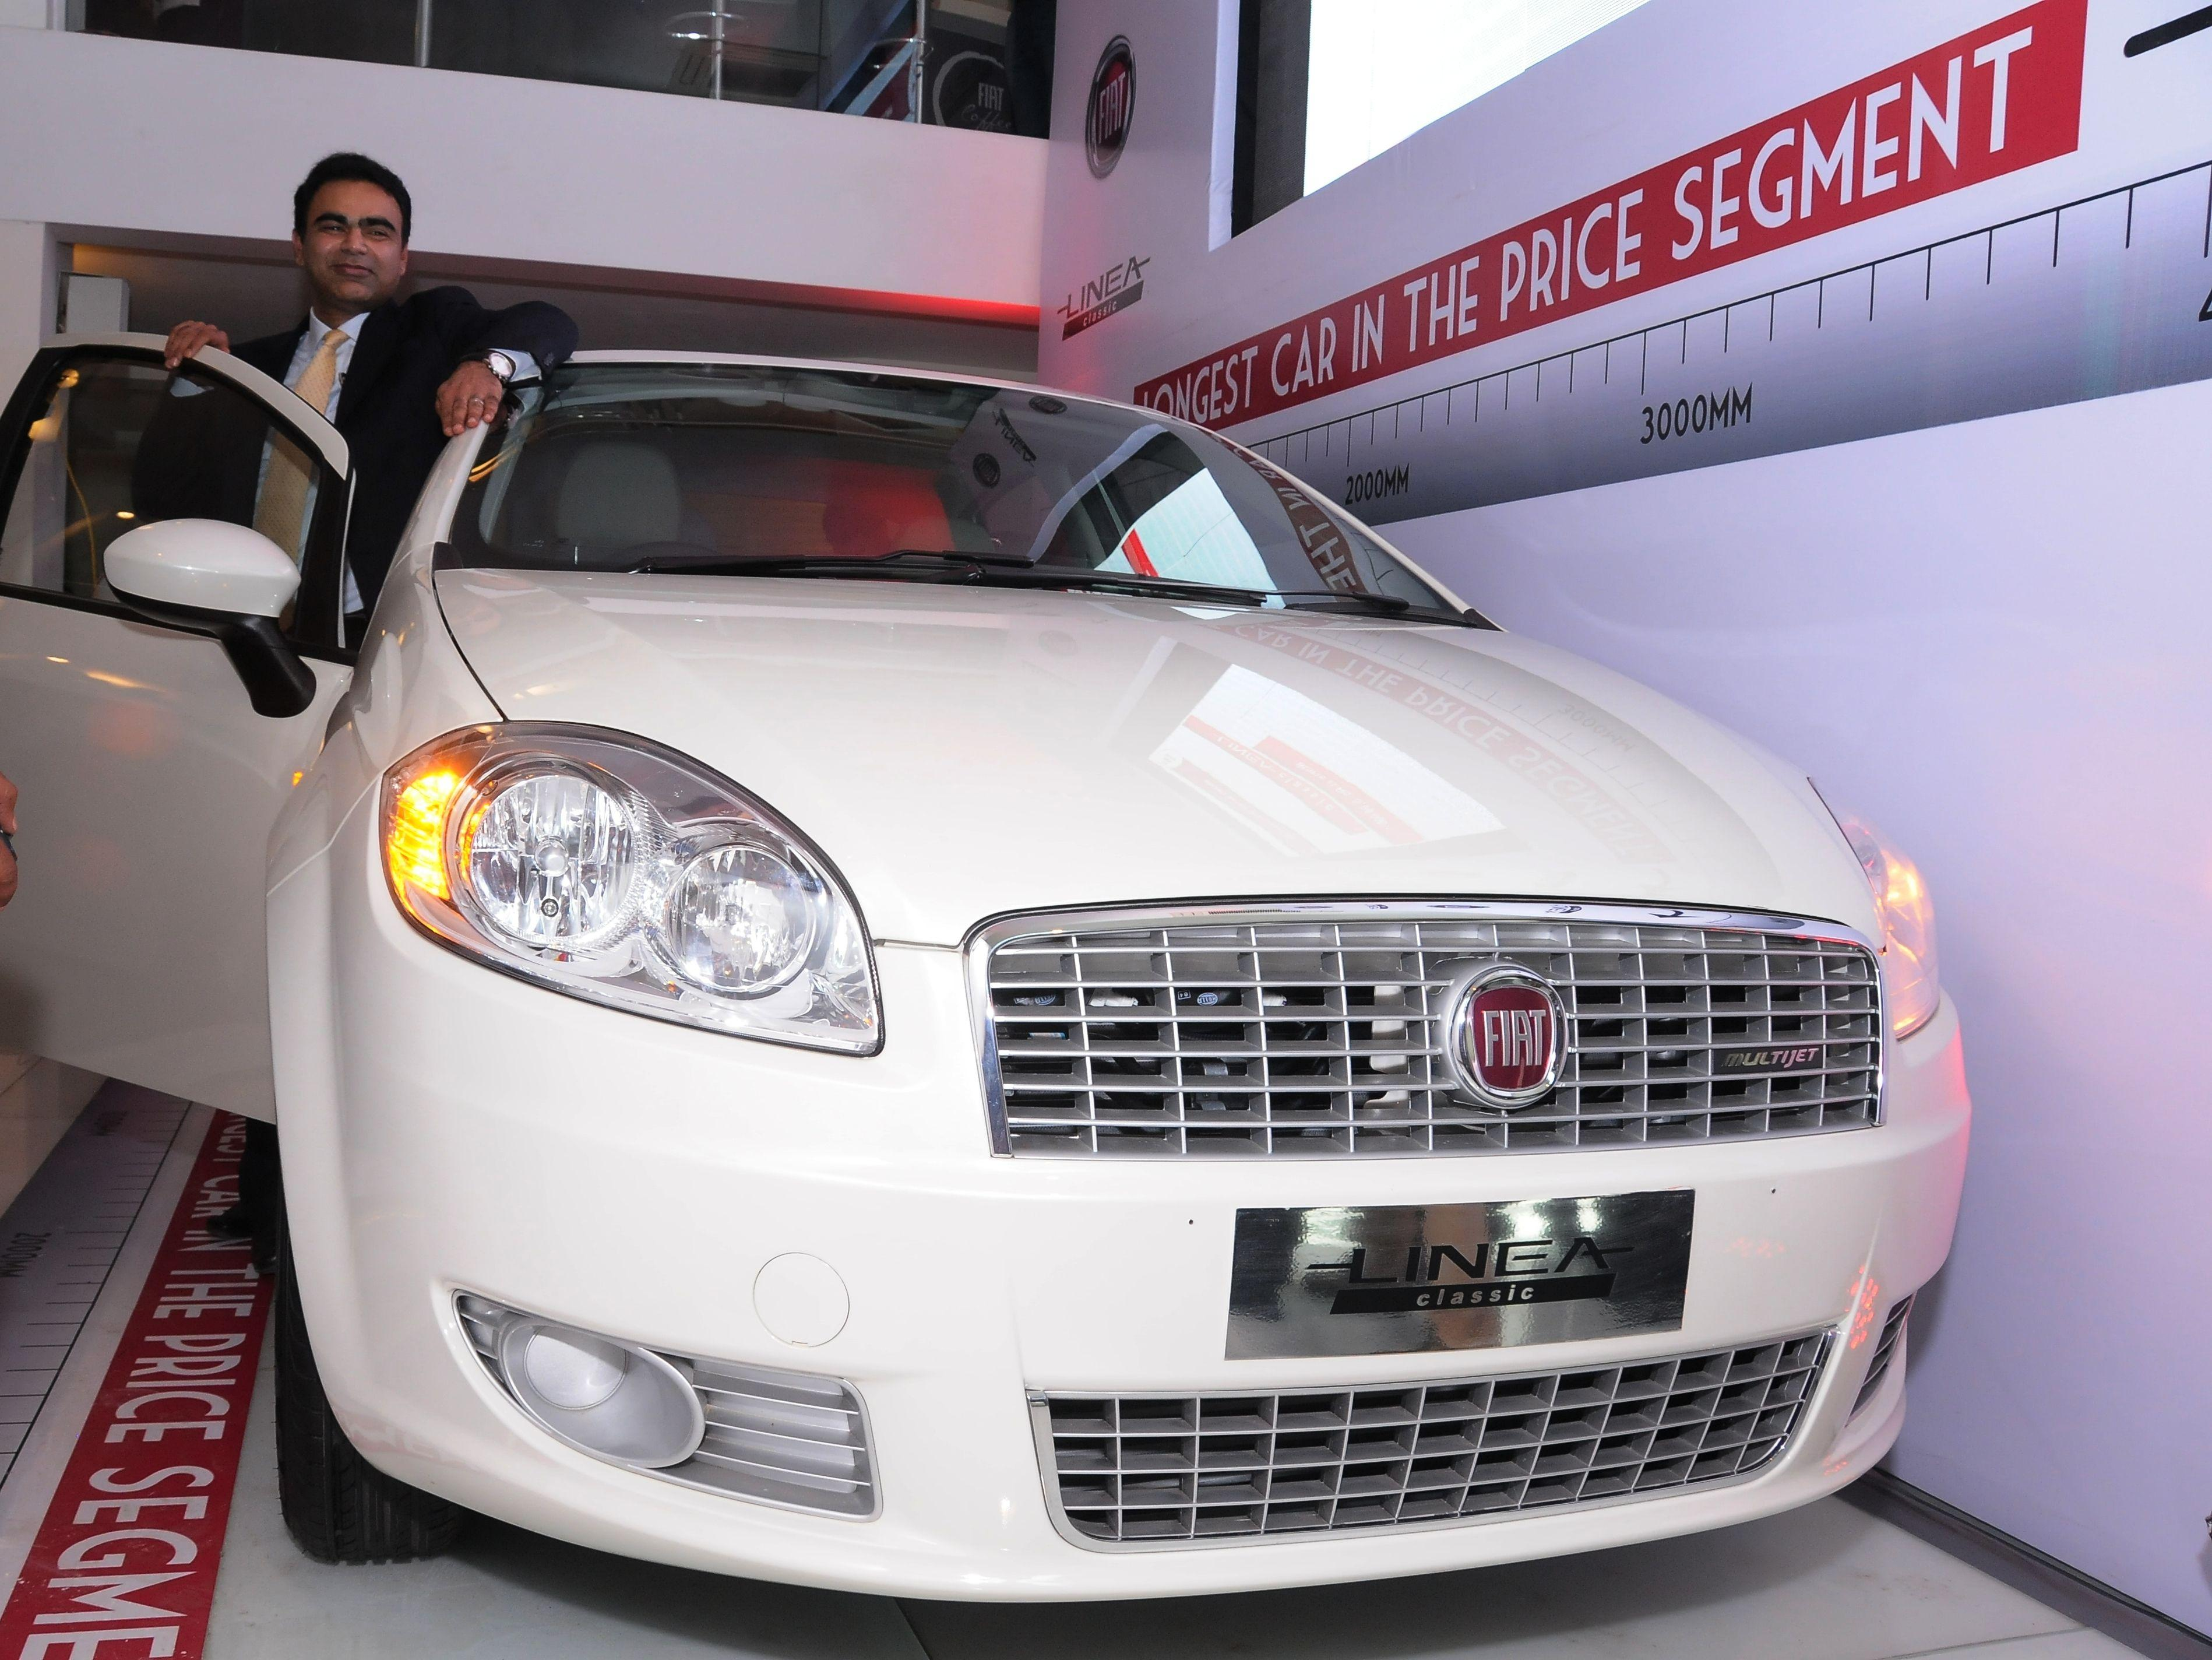 fiat linea classic launched, price starts @ rs. 5.99 lakh